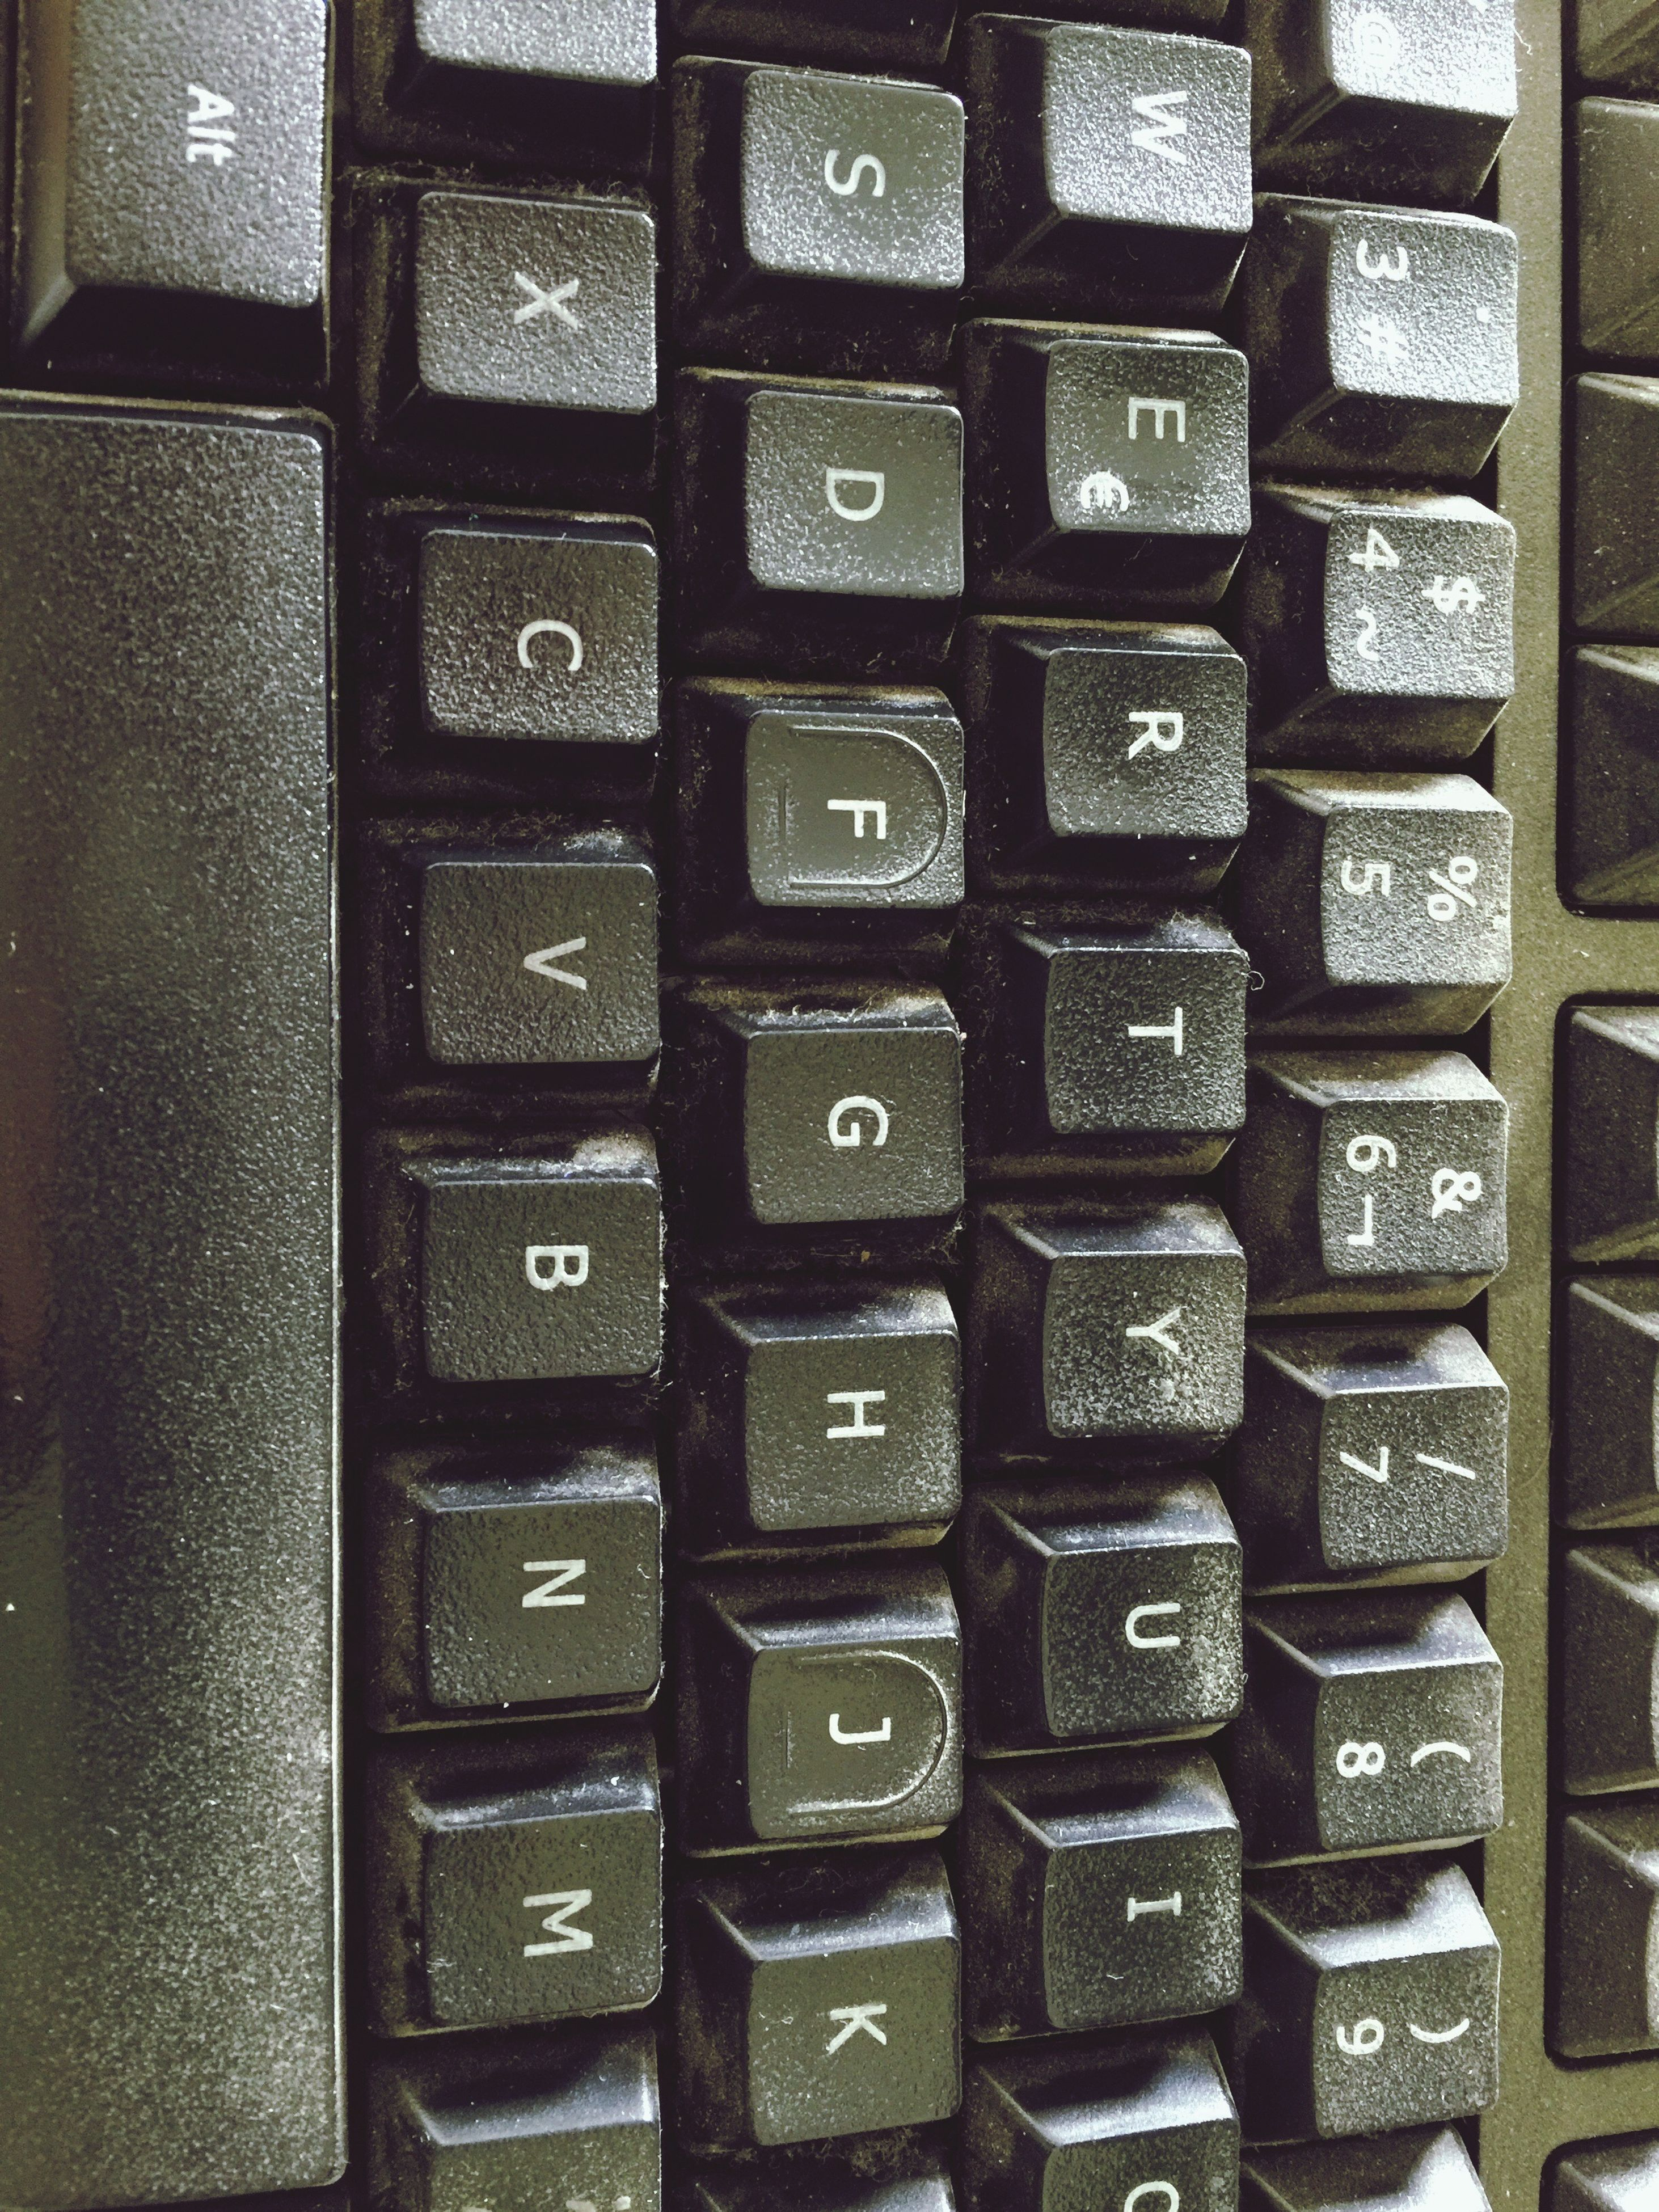 technology, connection, communication, number, full frame, text, backgrounds, indoors, computer keyboard, wireless technology, western script, computer key, close-up, detail, keyboard